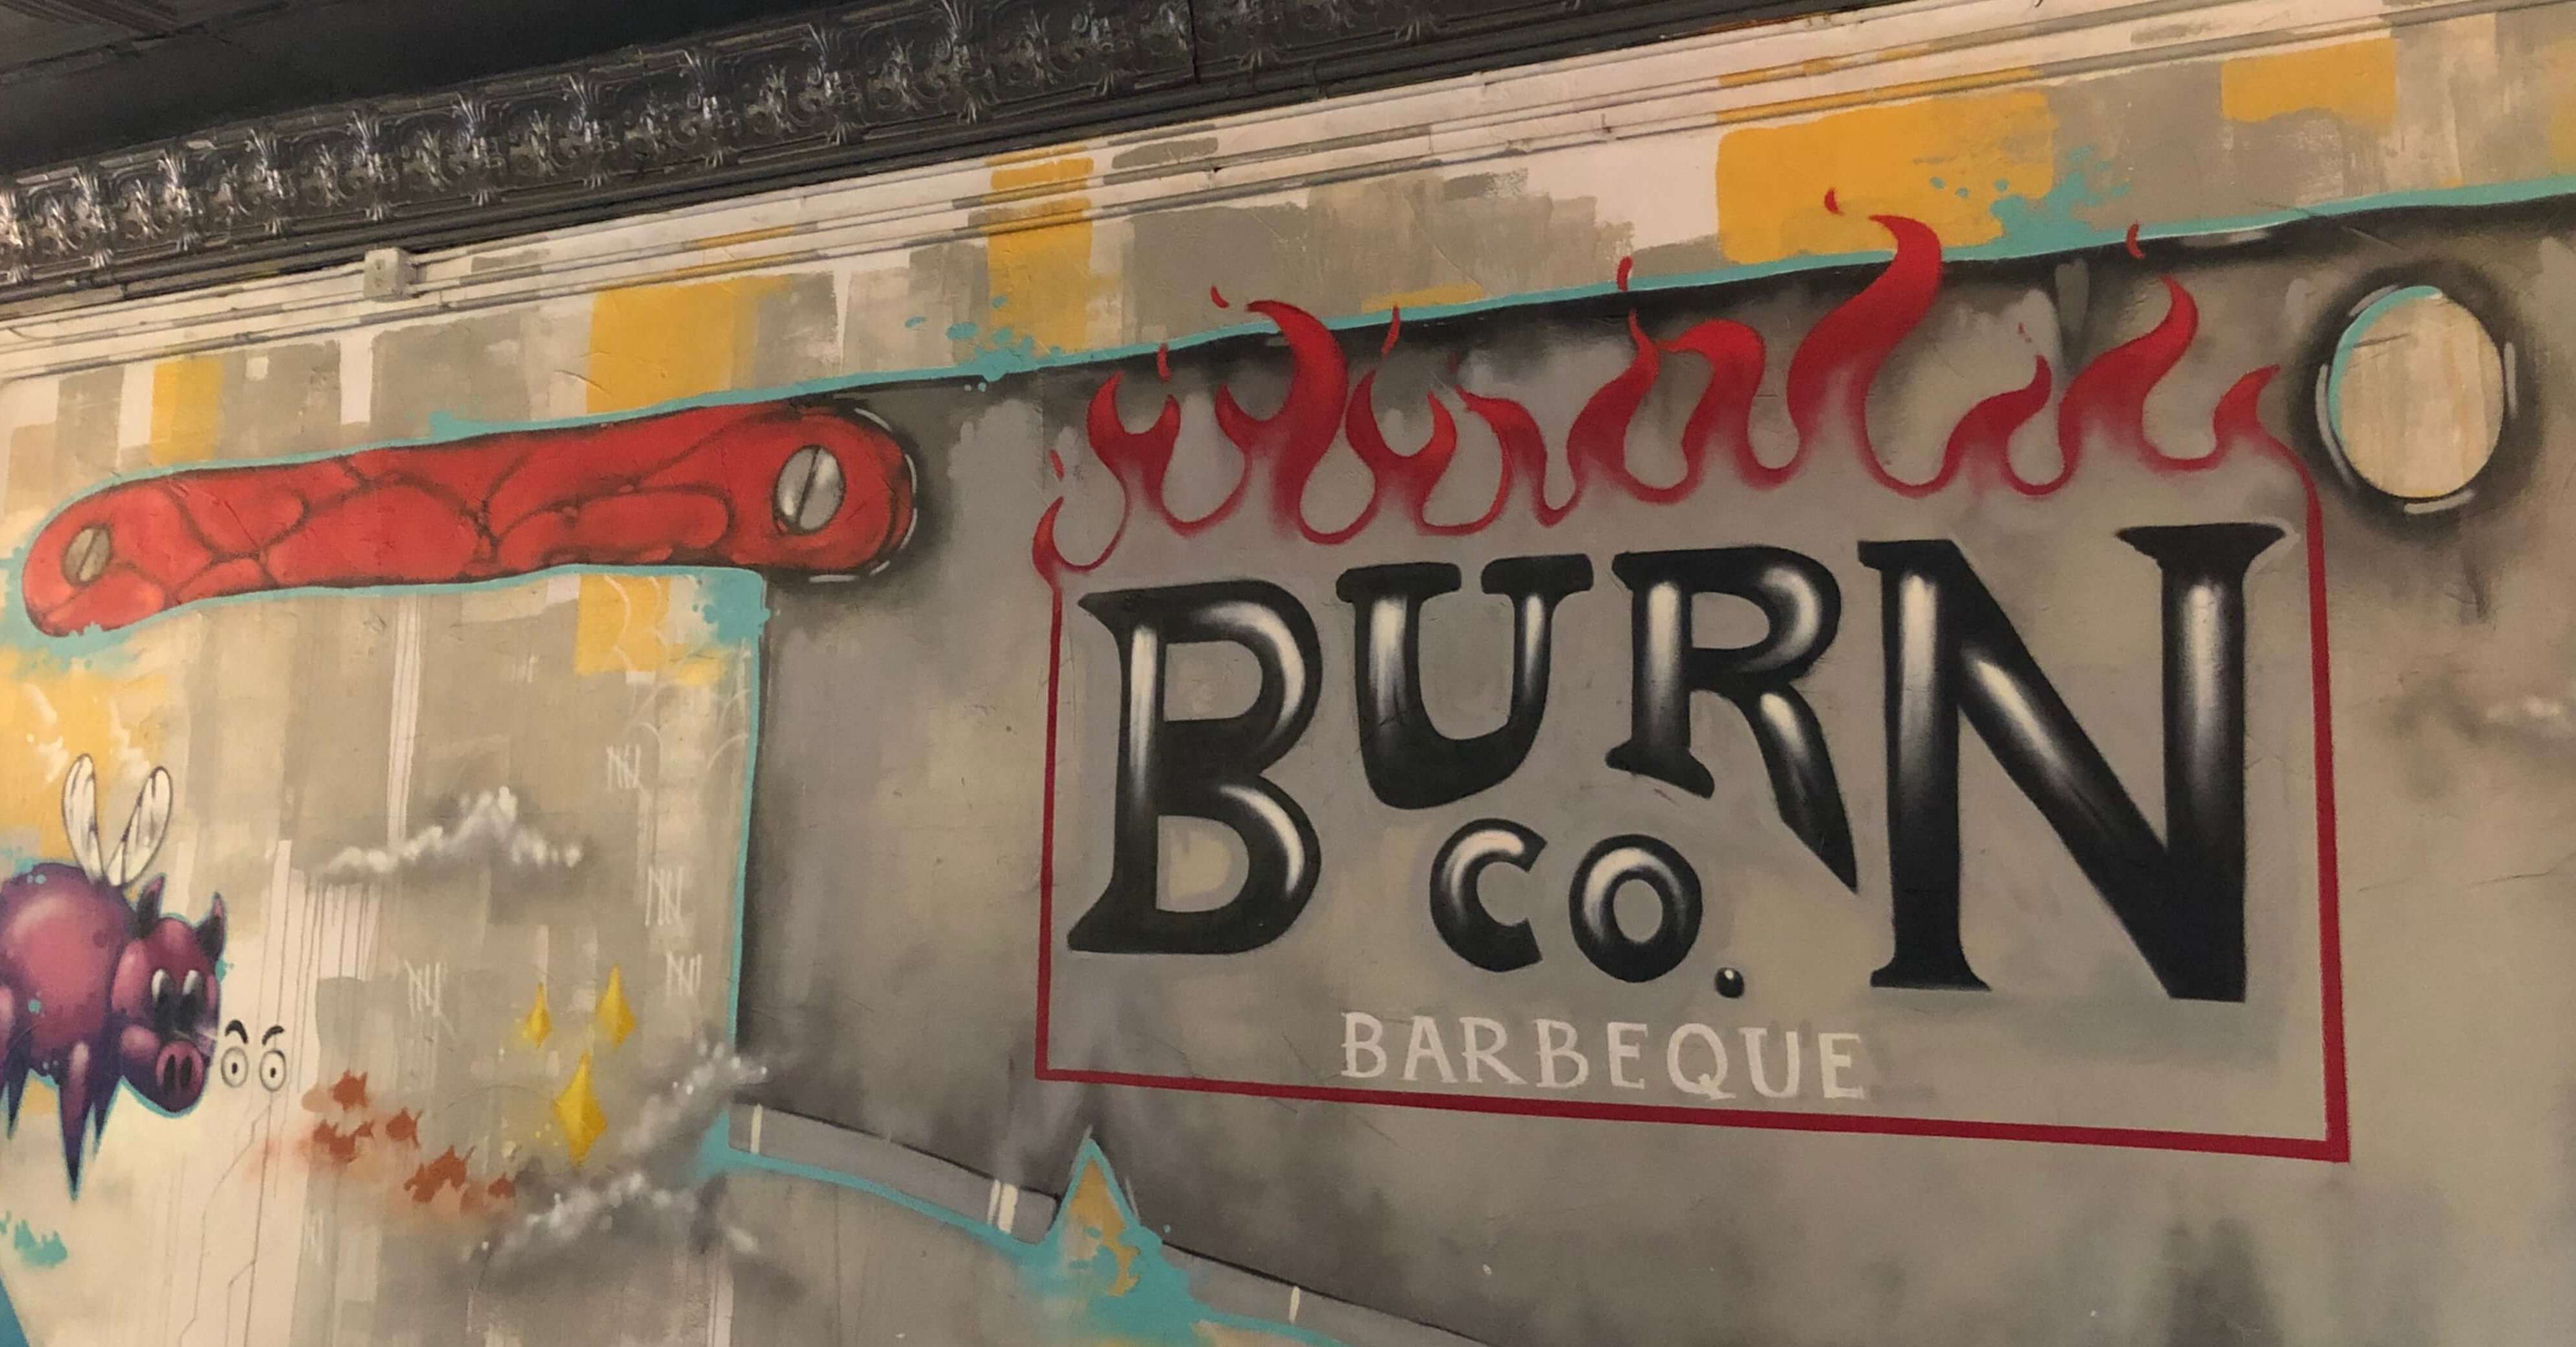 BurnCo BBQ meats in Tulsa